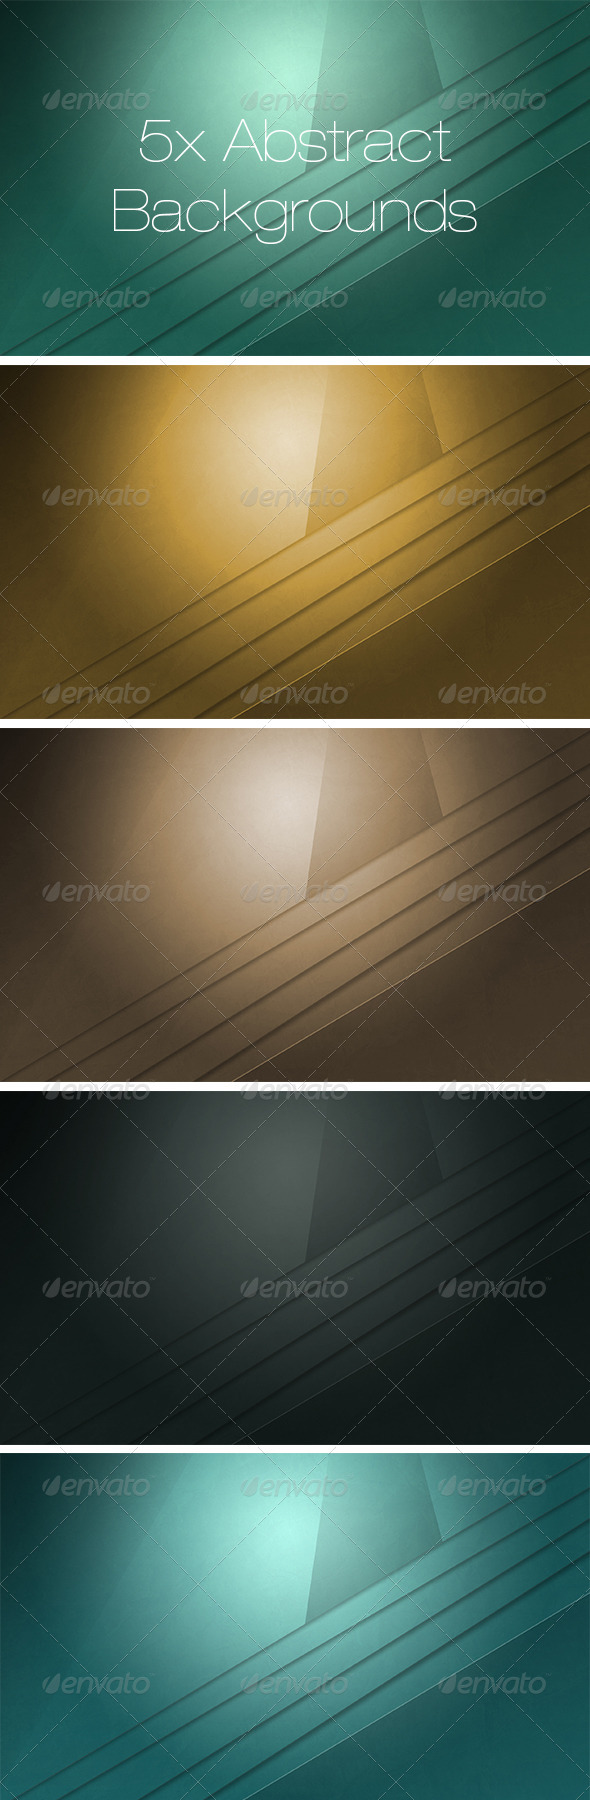 5x Abstract Backgrounds - Abstract Backgrounds